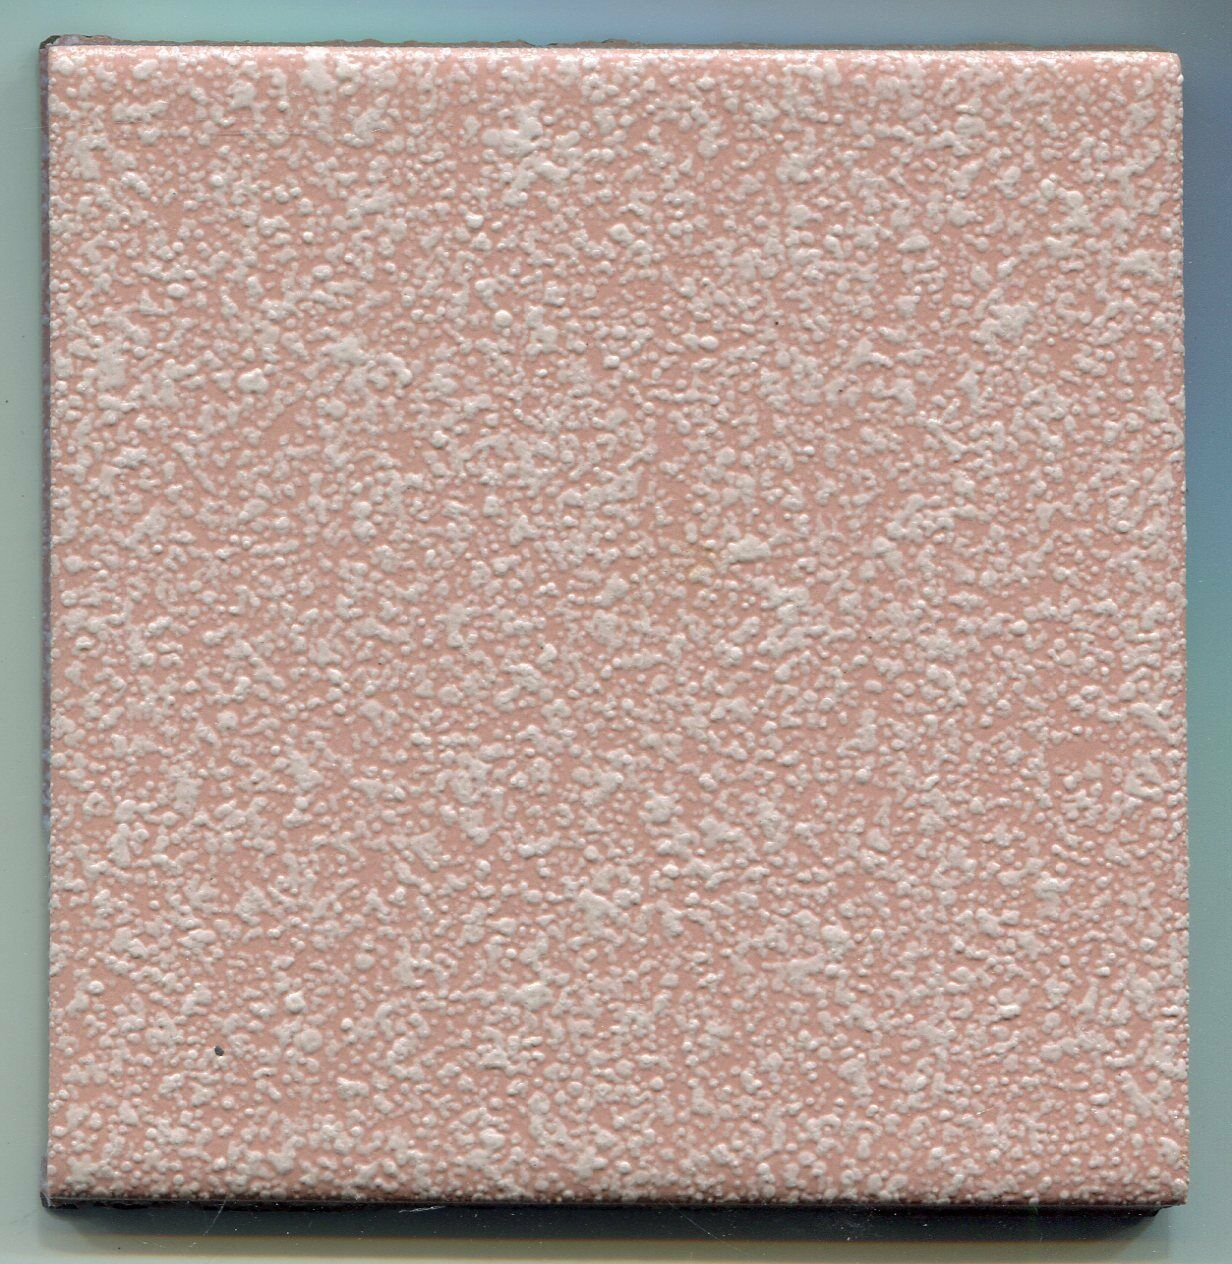 Ceramic Tile Pale Pink Speckled About 4x4 Textured Bathroom Kitchen Sample L 1 Of See More